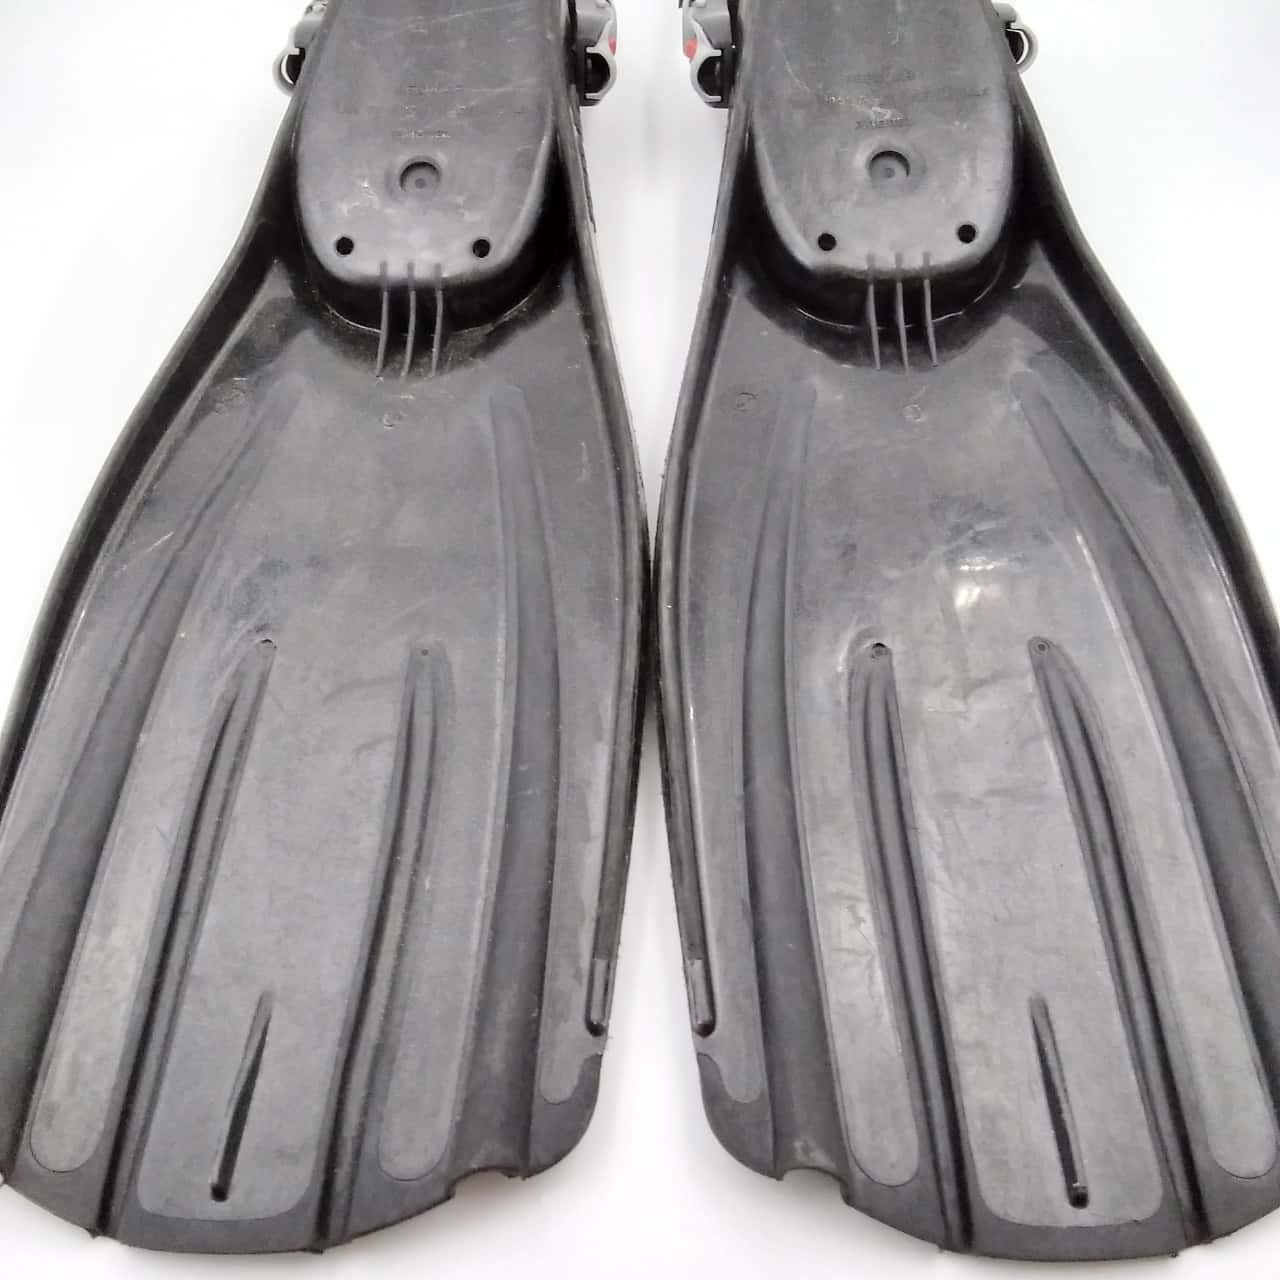 Mares Advabti Flippers